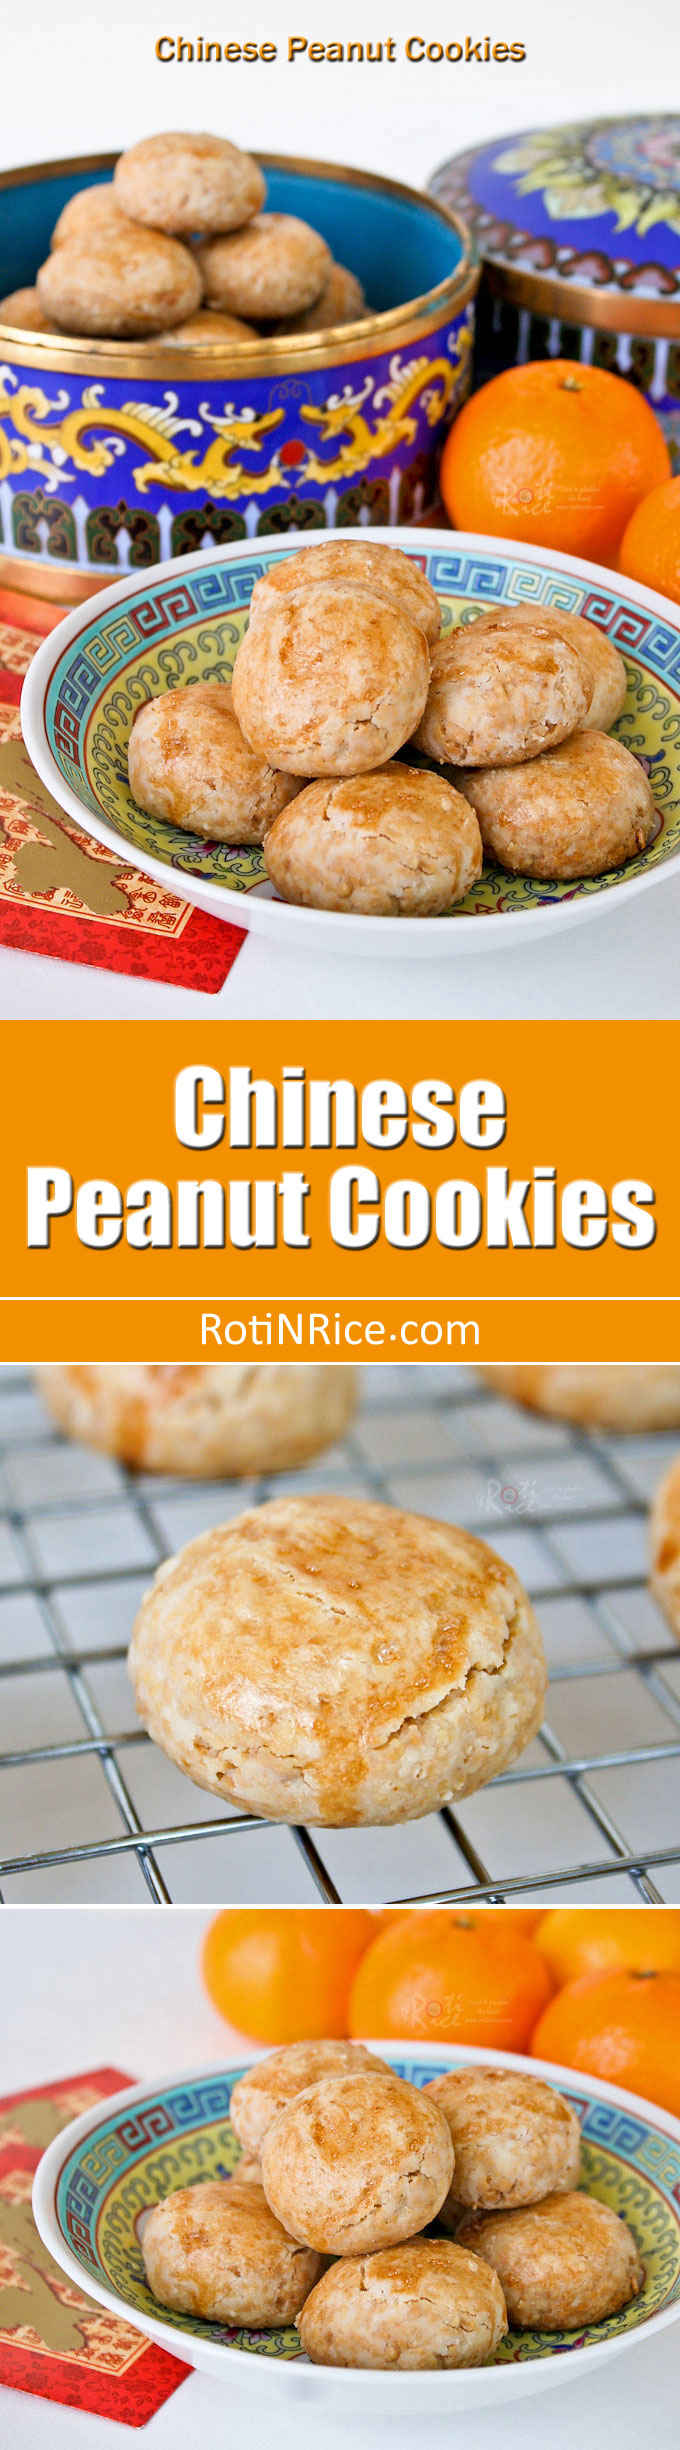 Melt-in-the-mouth  gluten free Chinese Peanut Cookies using freshly roasted peanuts and rice flour. They are very easy to make and a treat for sure! | RotiNRice.com